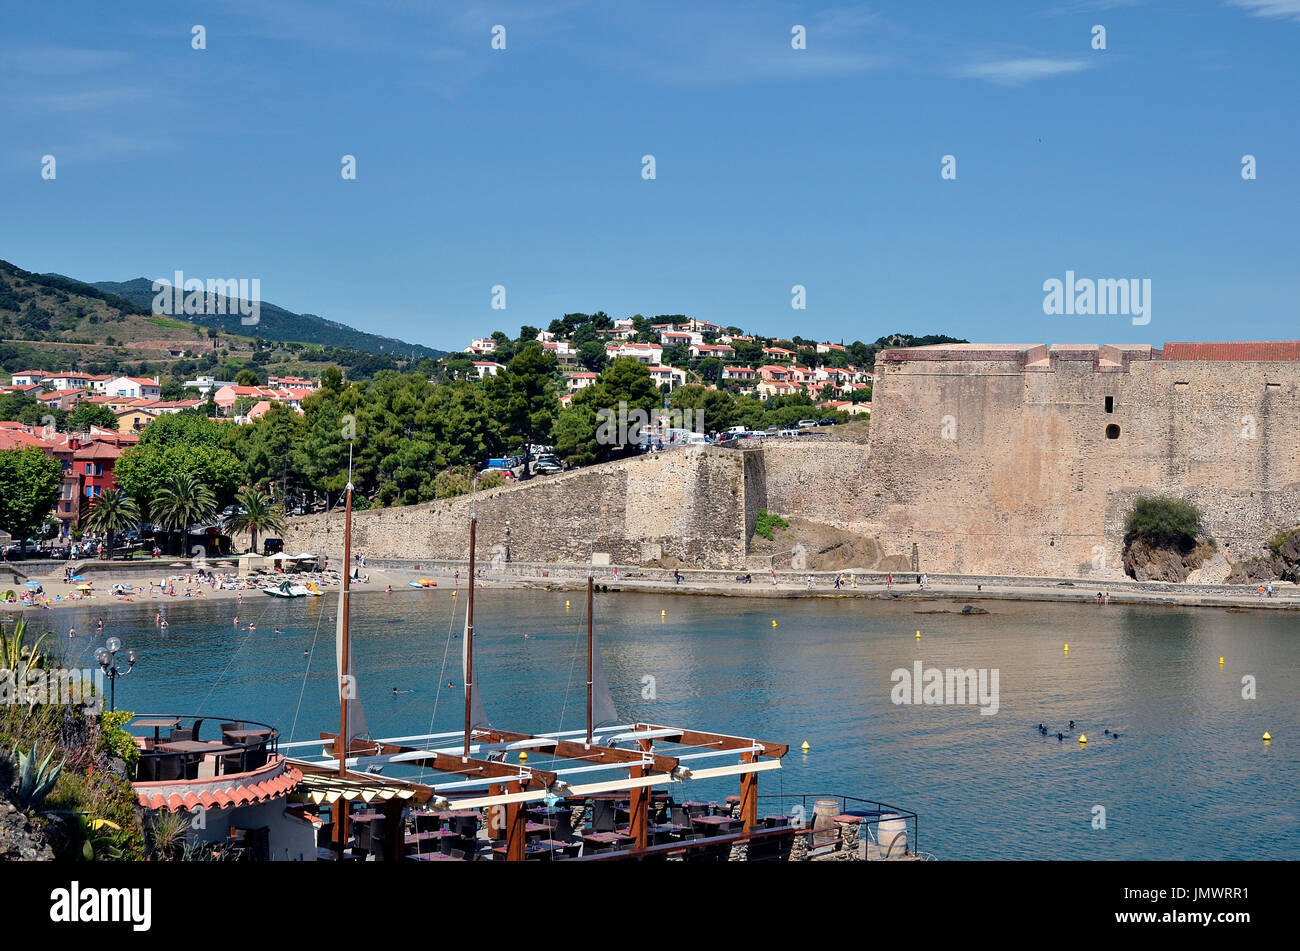 Town and fortifications of Collioure, commune on the côte vermeille in the Pyrénées-Orientales department, Languedoc-Roussillon region, in France - Stock Image